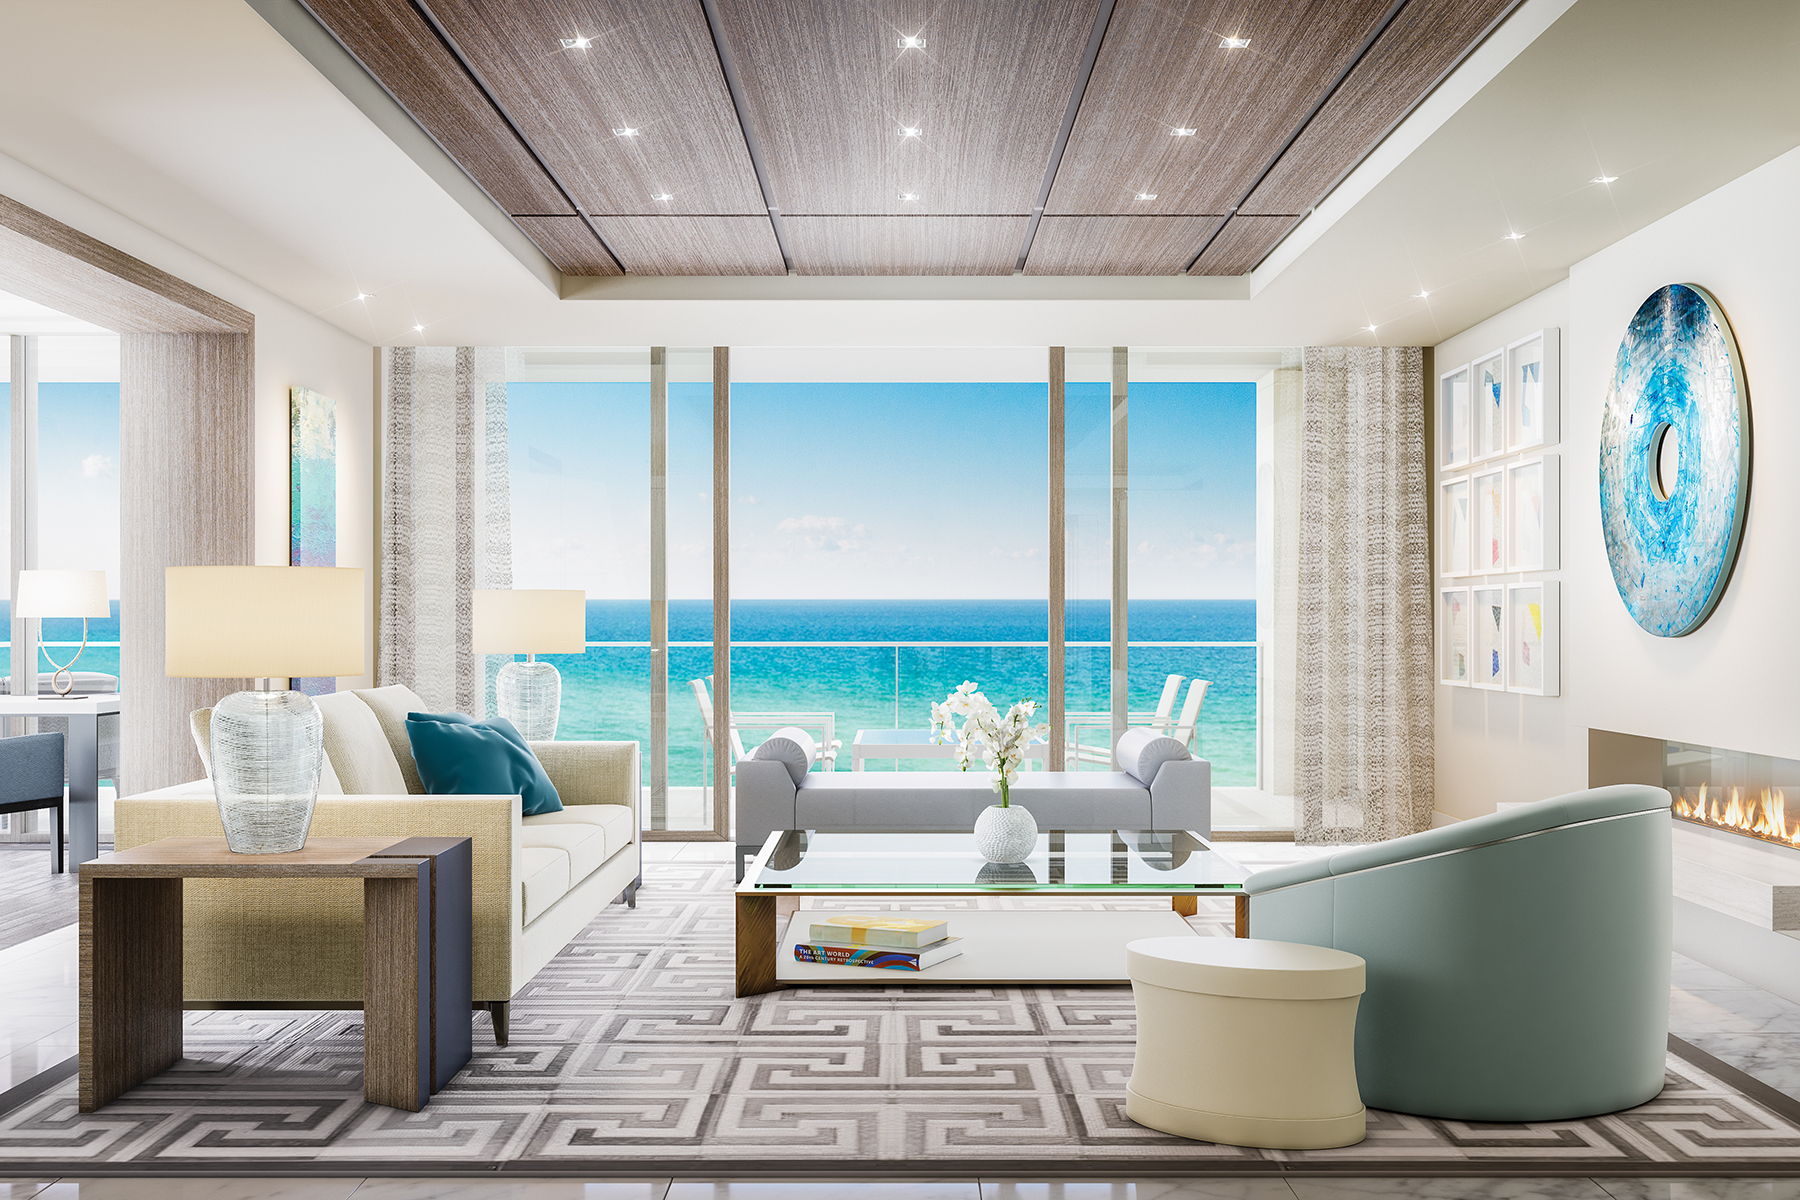 Condominium for Sale at Naples 6897 Grenadier Blvd 701, Naples, Florida 34108 United States